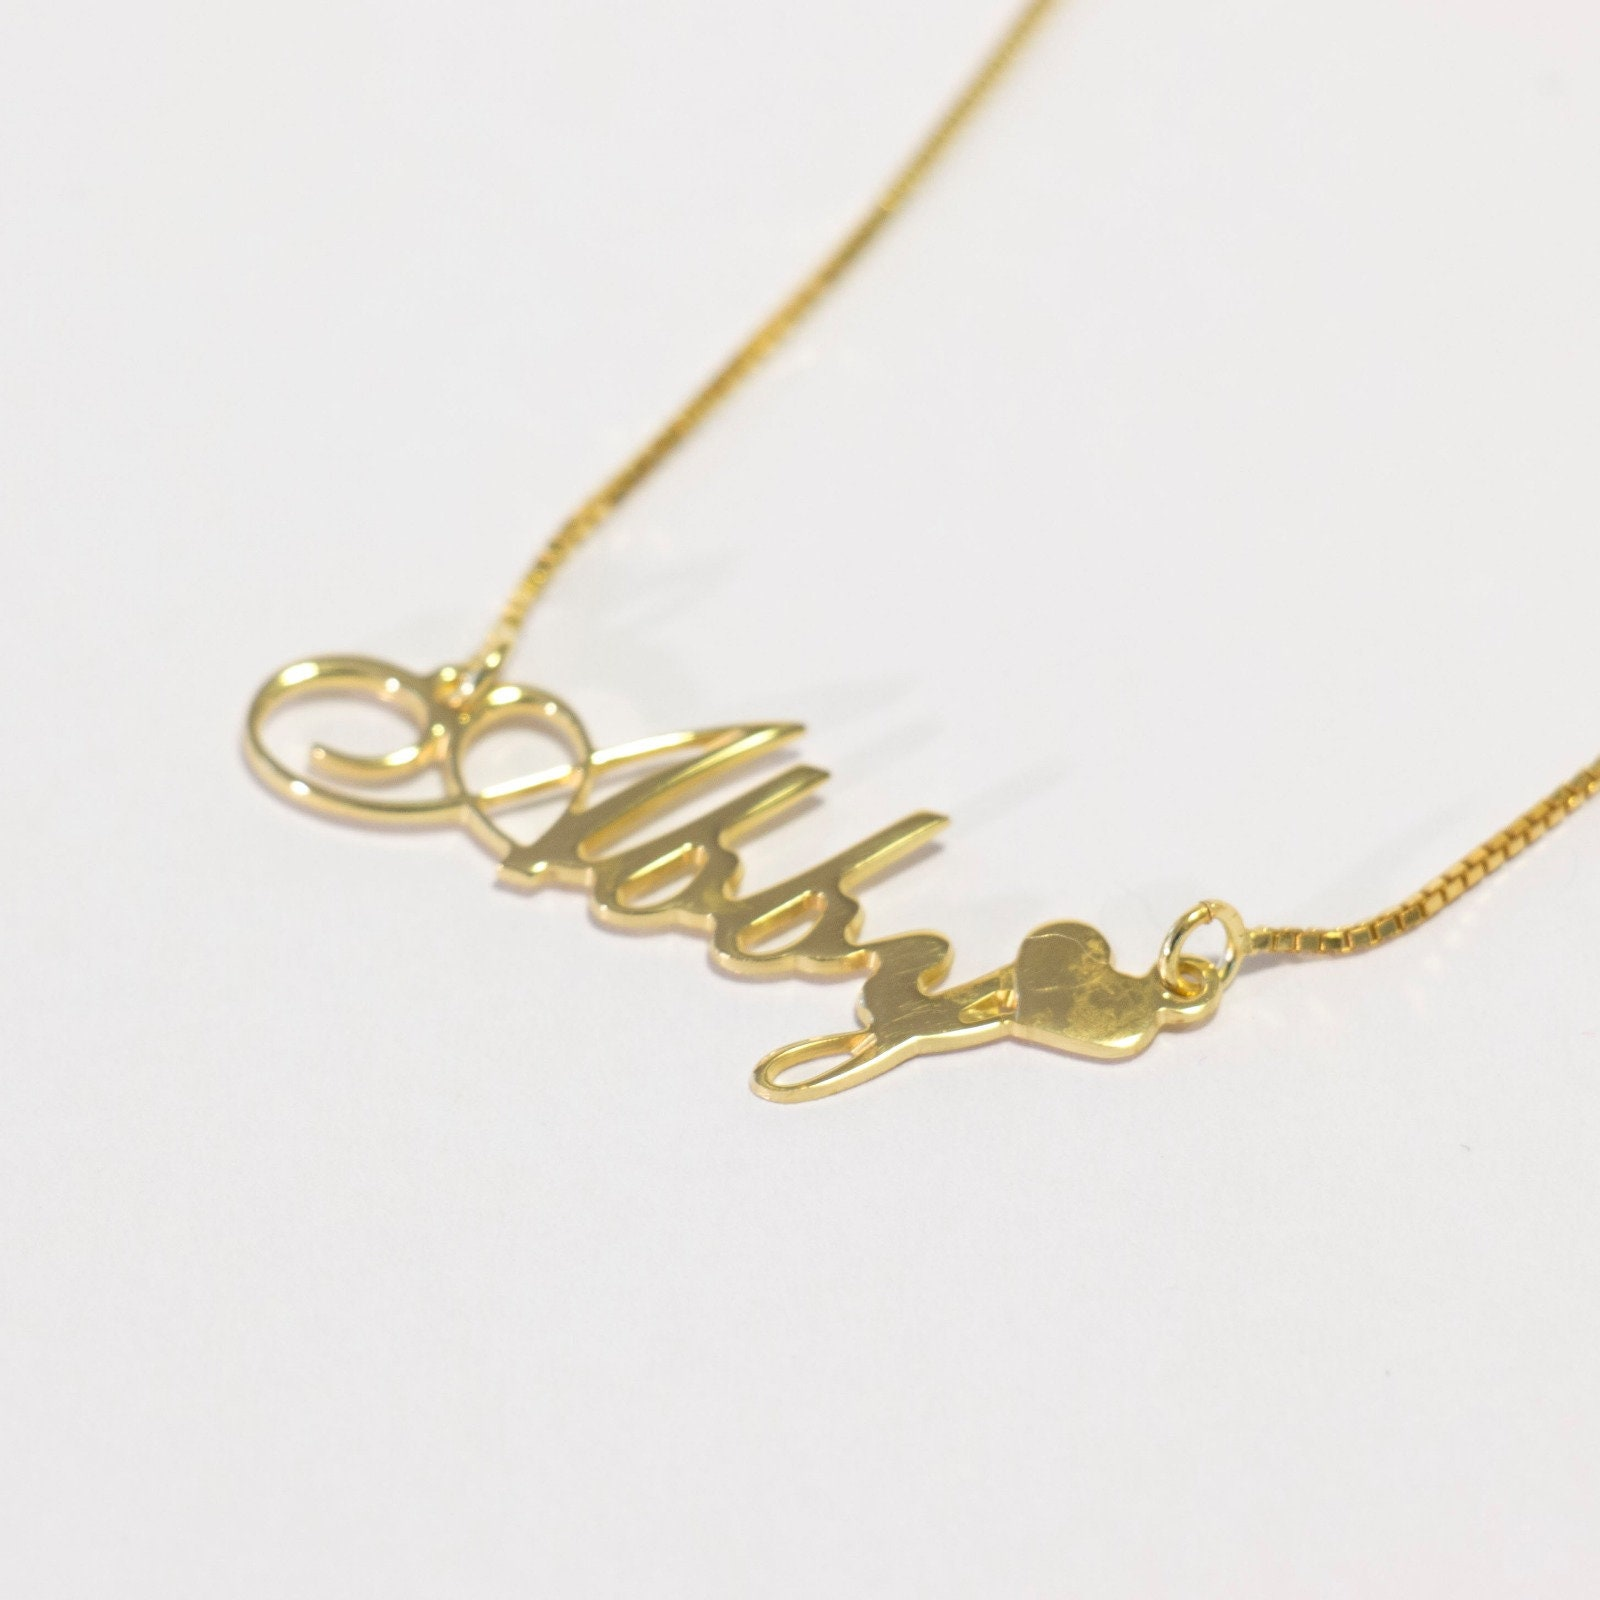 Cursive Name Plate Necklace My Name Jewelry Sterling Silver Name Chain Abigail